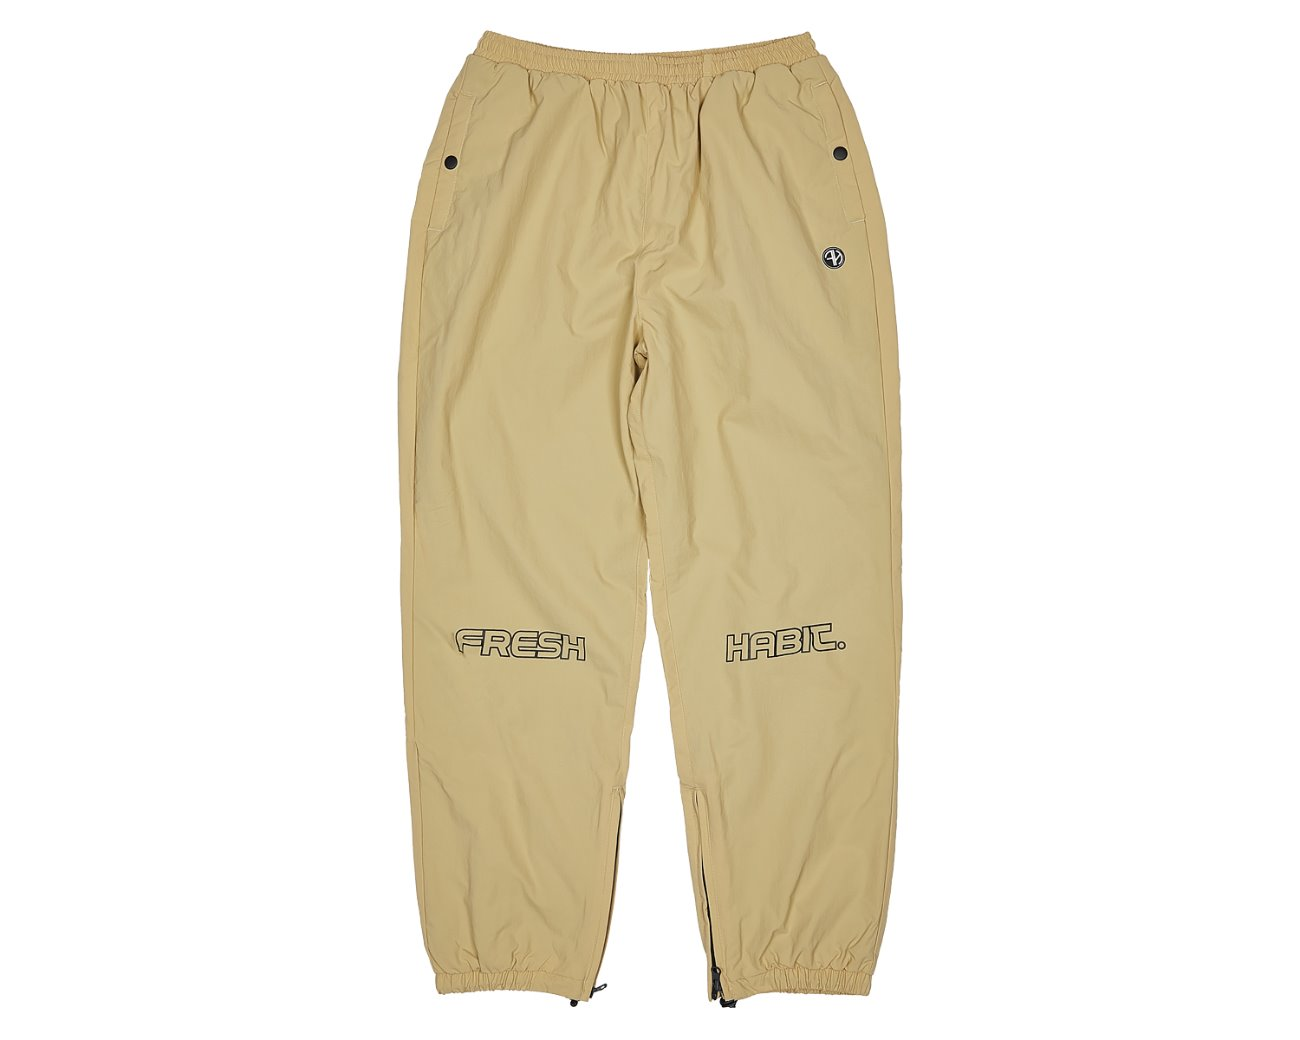 FH TRACK PANTS WHEAT / GAFH